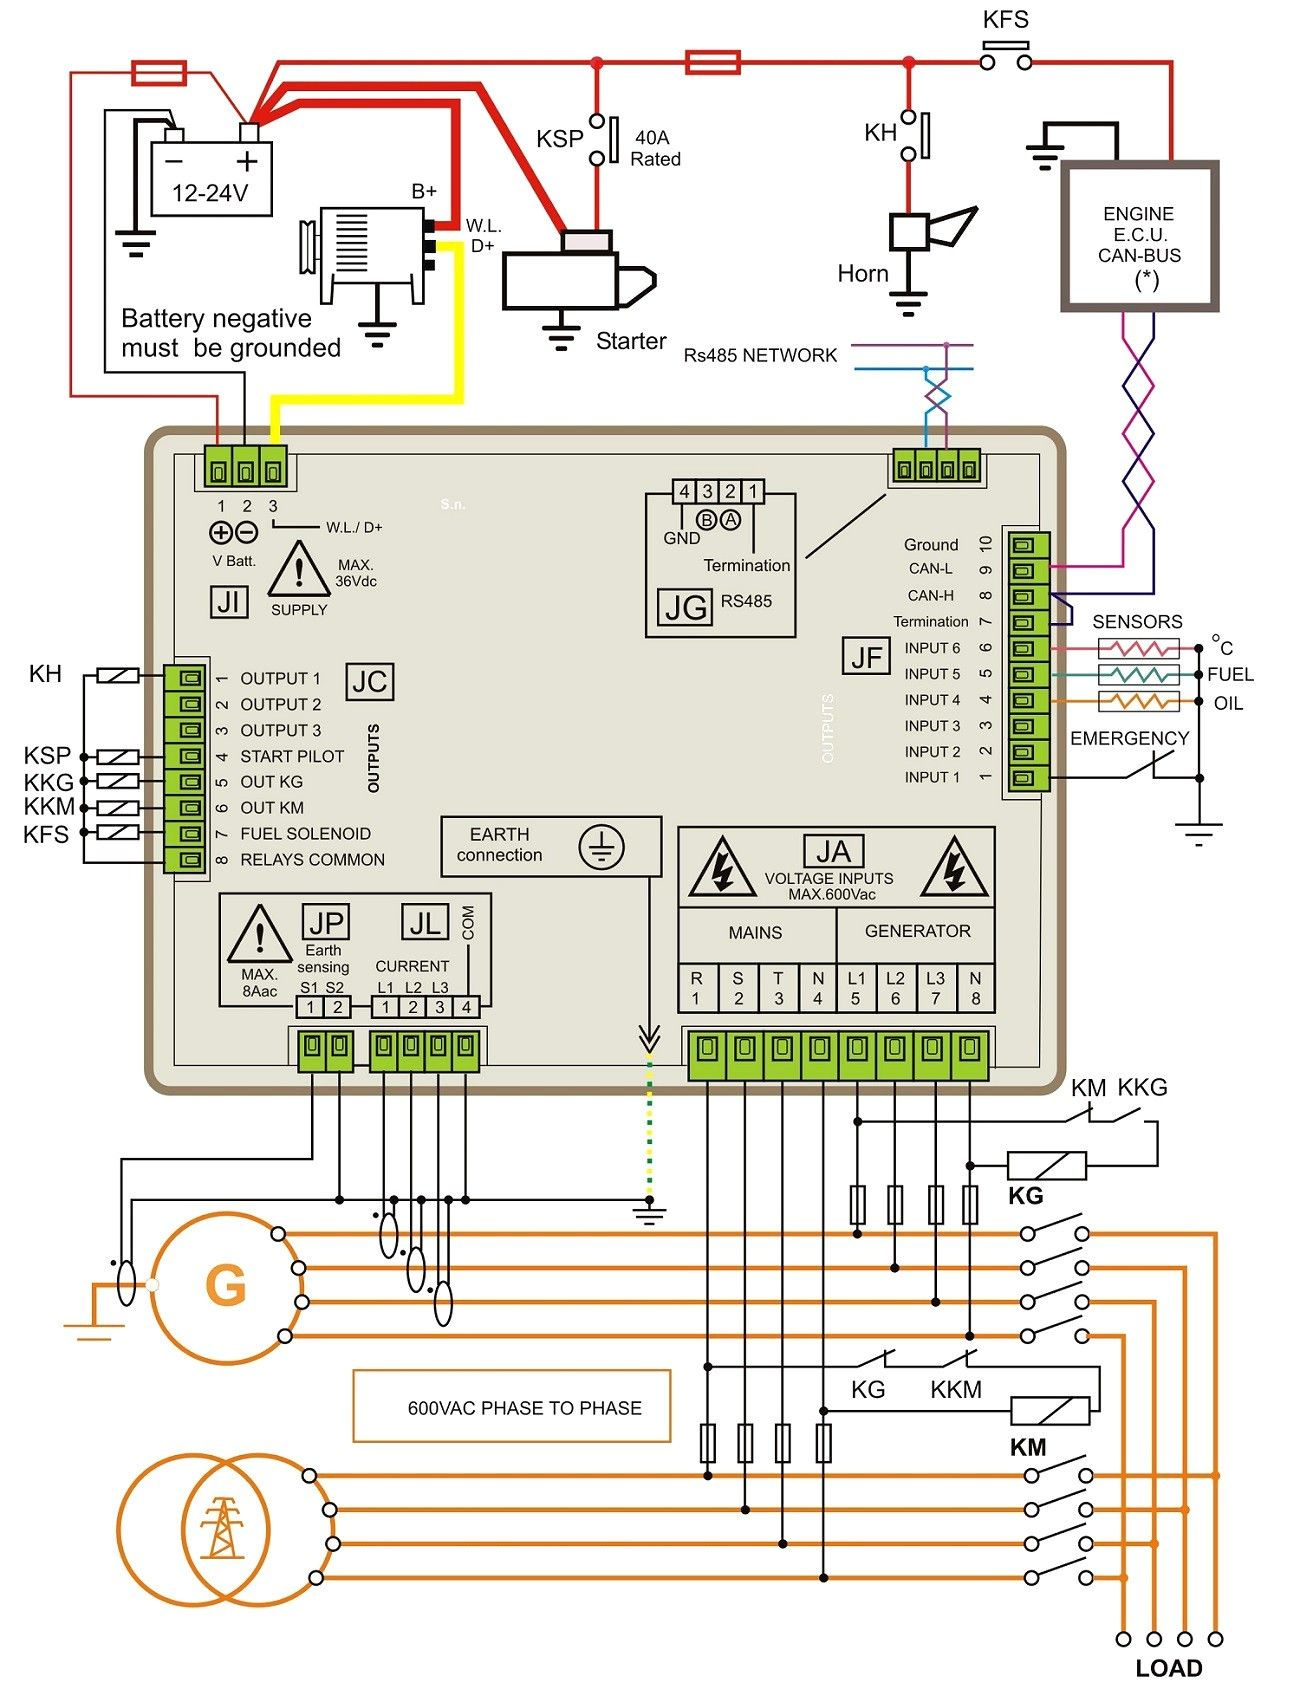 Generac Portable Generator Wiring Diagram from i.pinimg.com